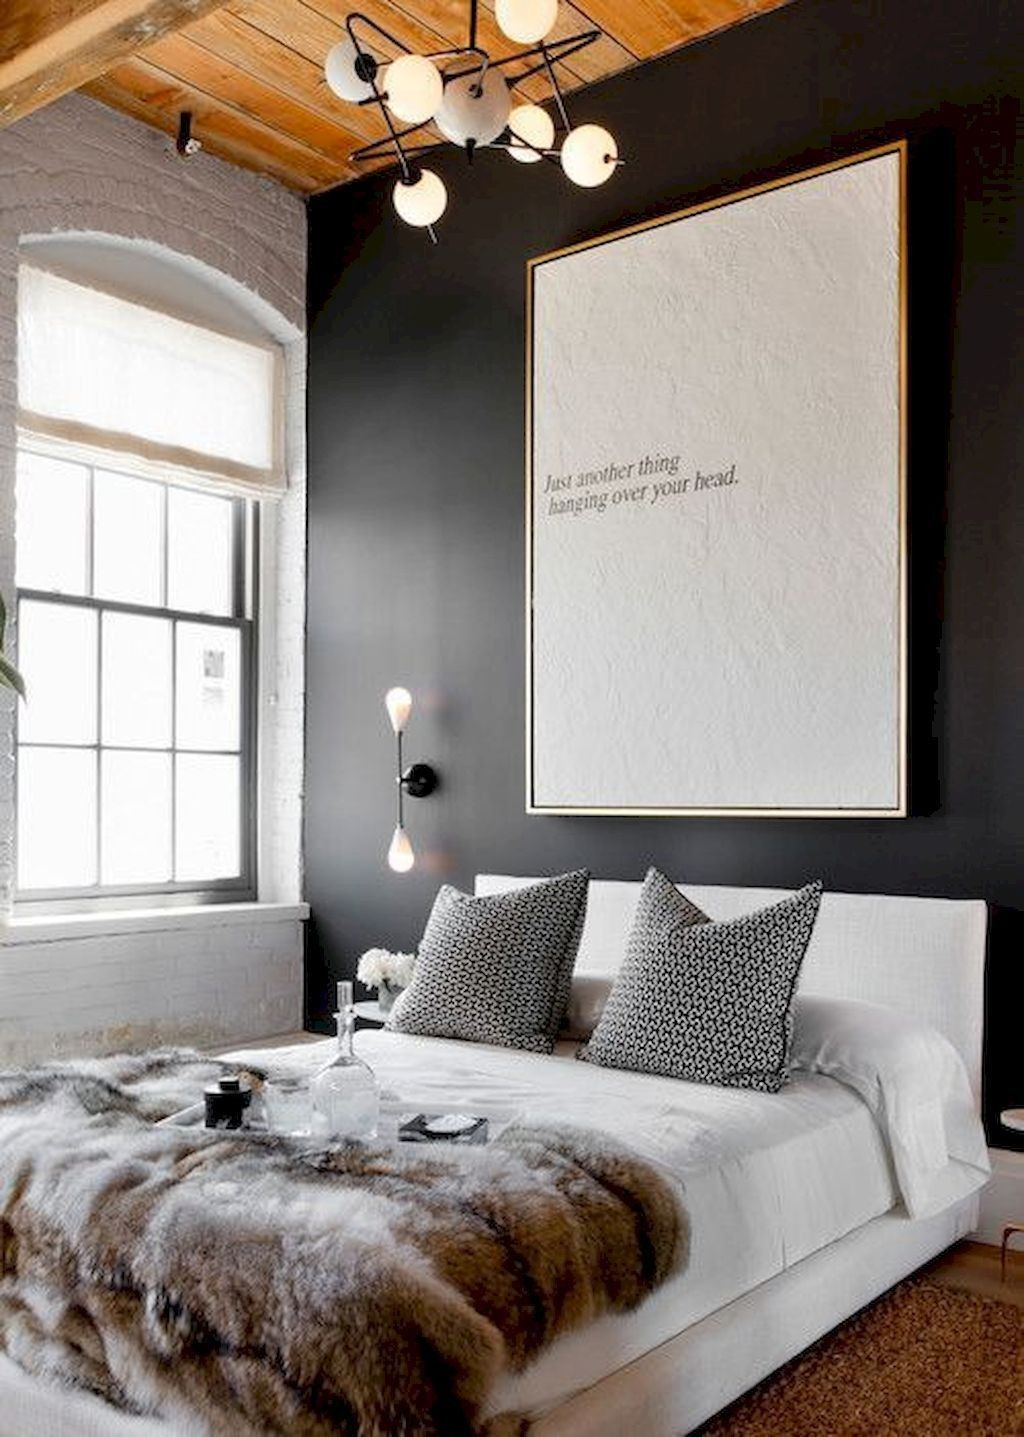 Master bedroom furniture layout  Bedroom Furniture Layout Remodel and make your ideal boudoir by way